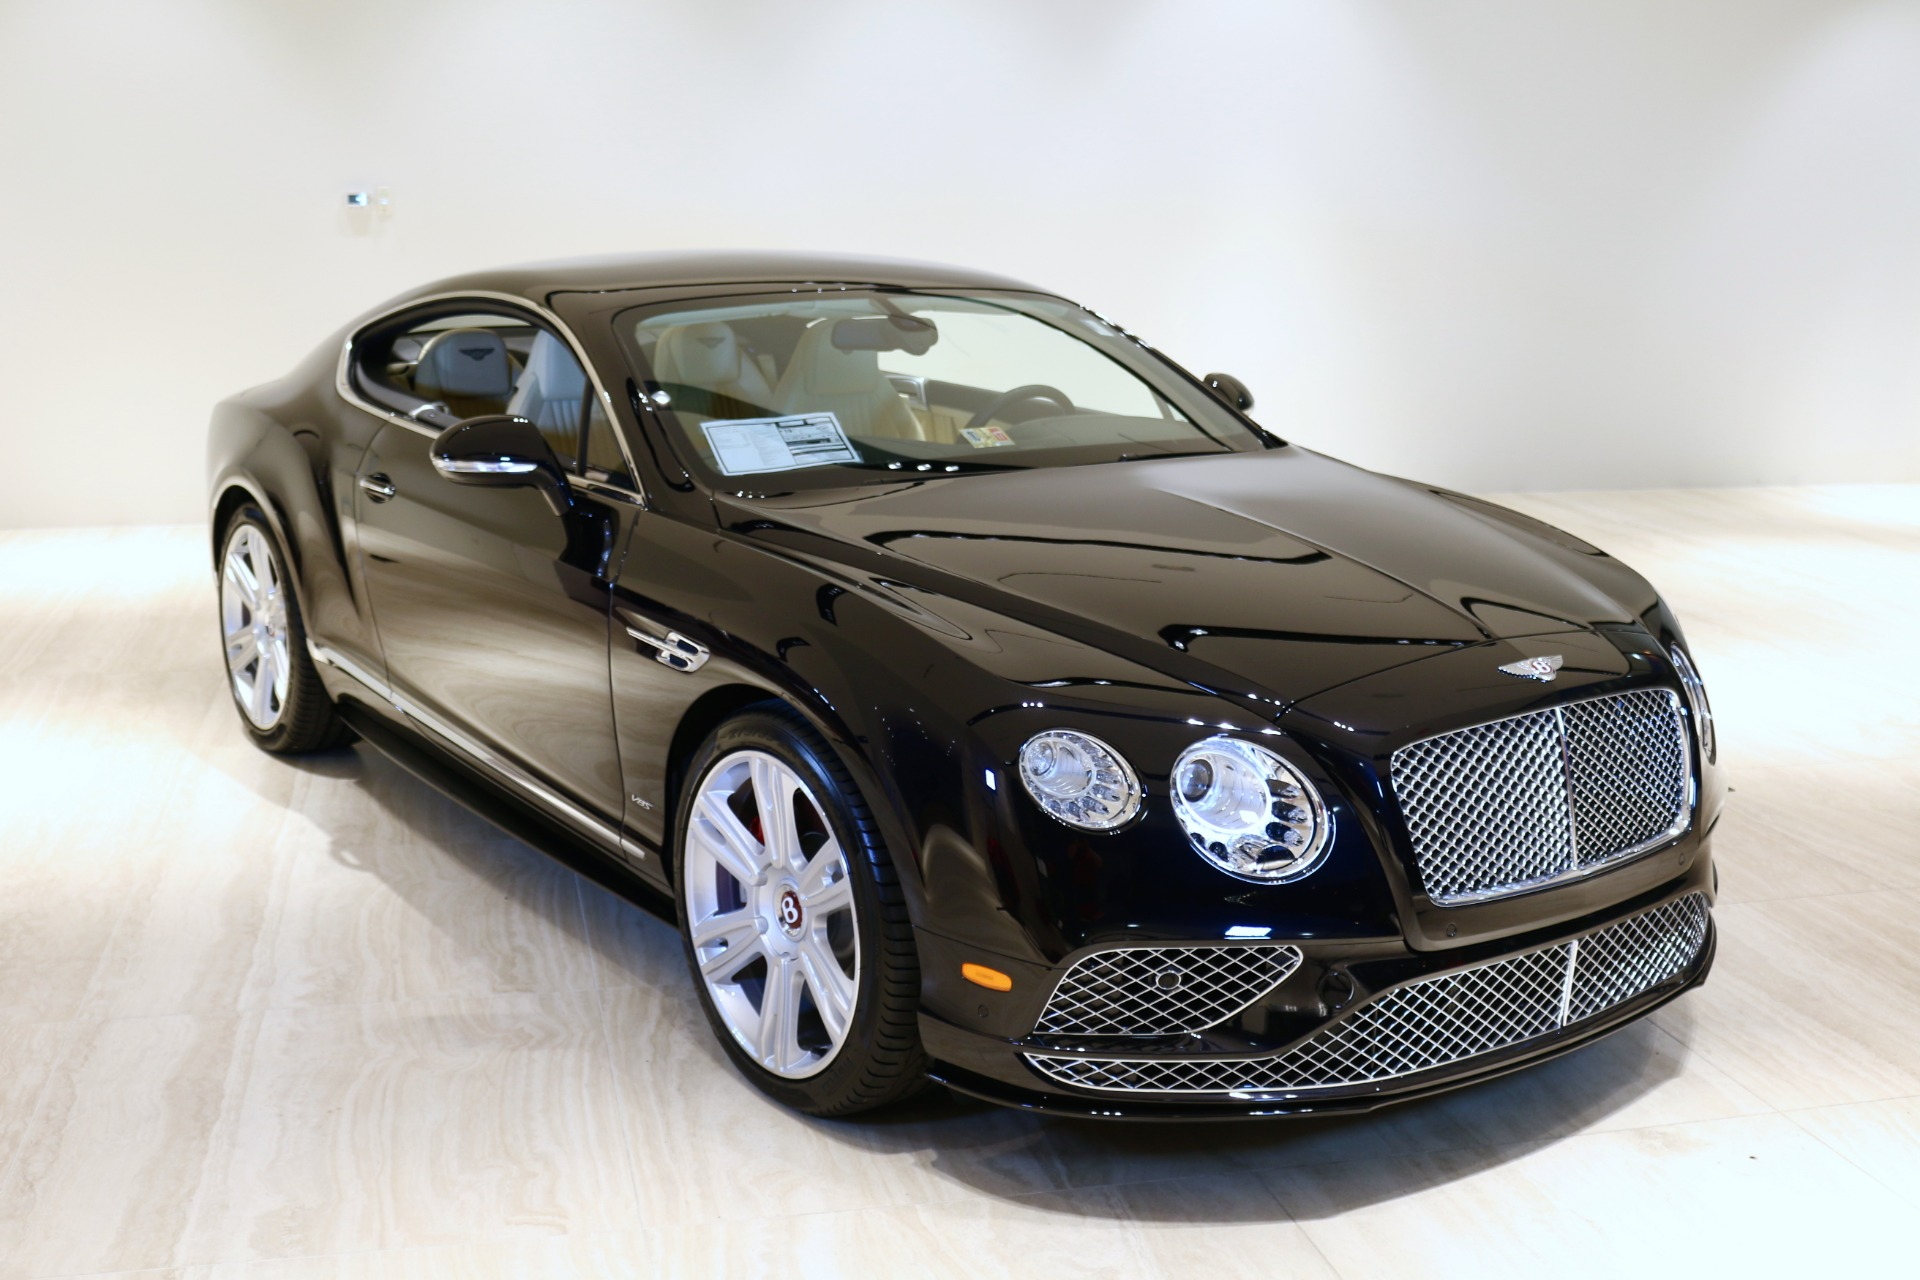 Lease Certified Pre Owned >> 2017 Bentley Continental GT V8 S Stock # 7NC060115 for sale near Vienna, VA | VA Bentley Dealer ...